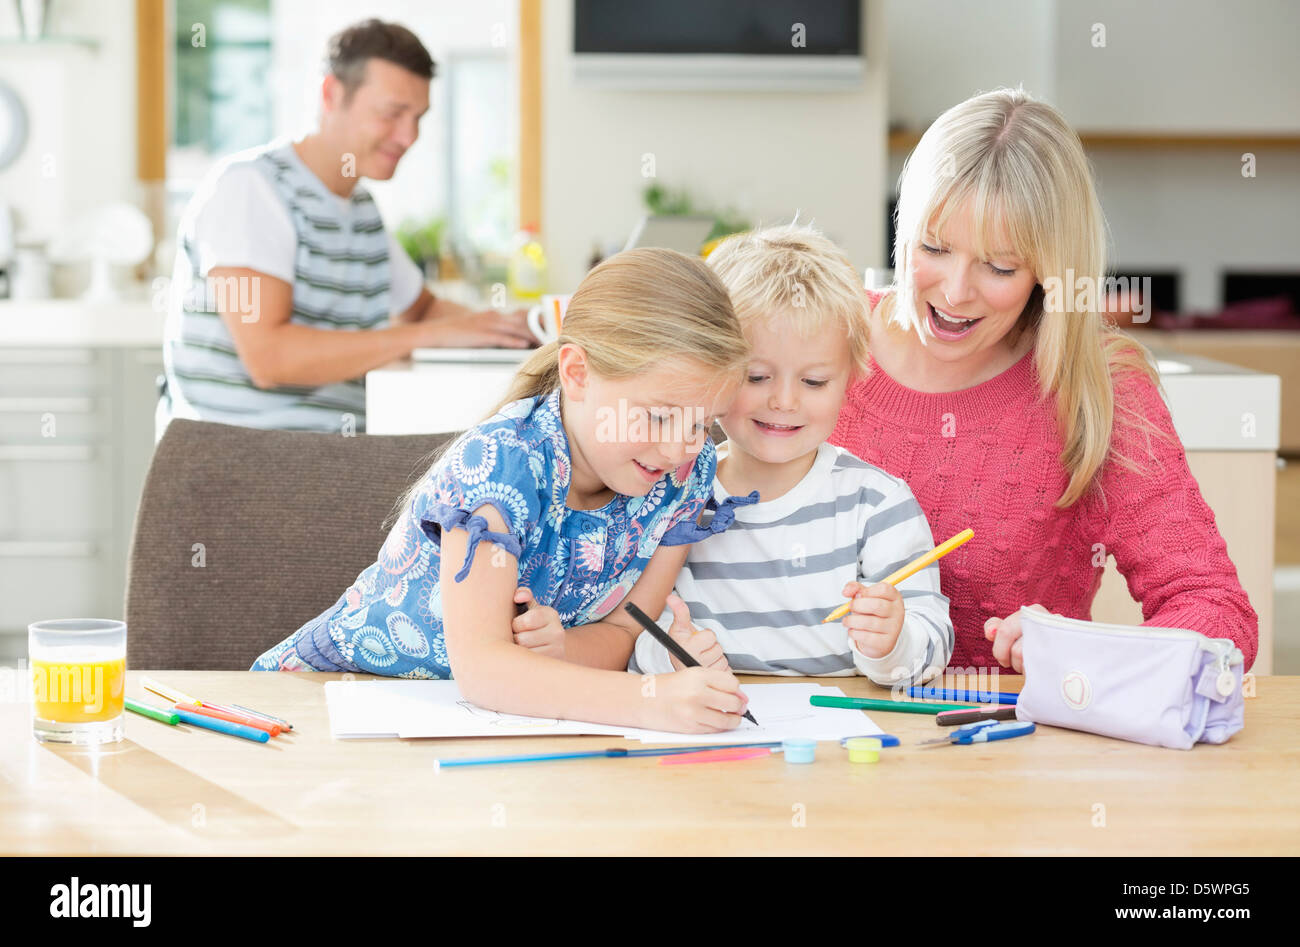 Mother and children coloring at table Stock Photo